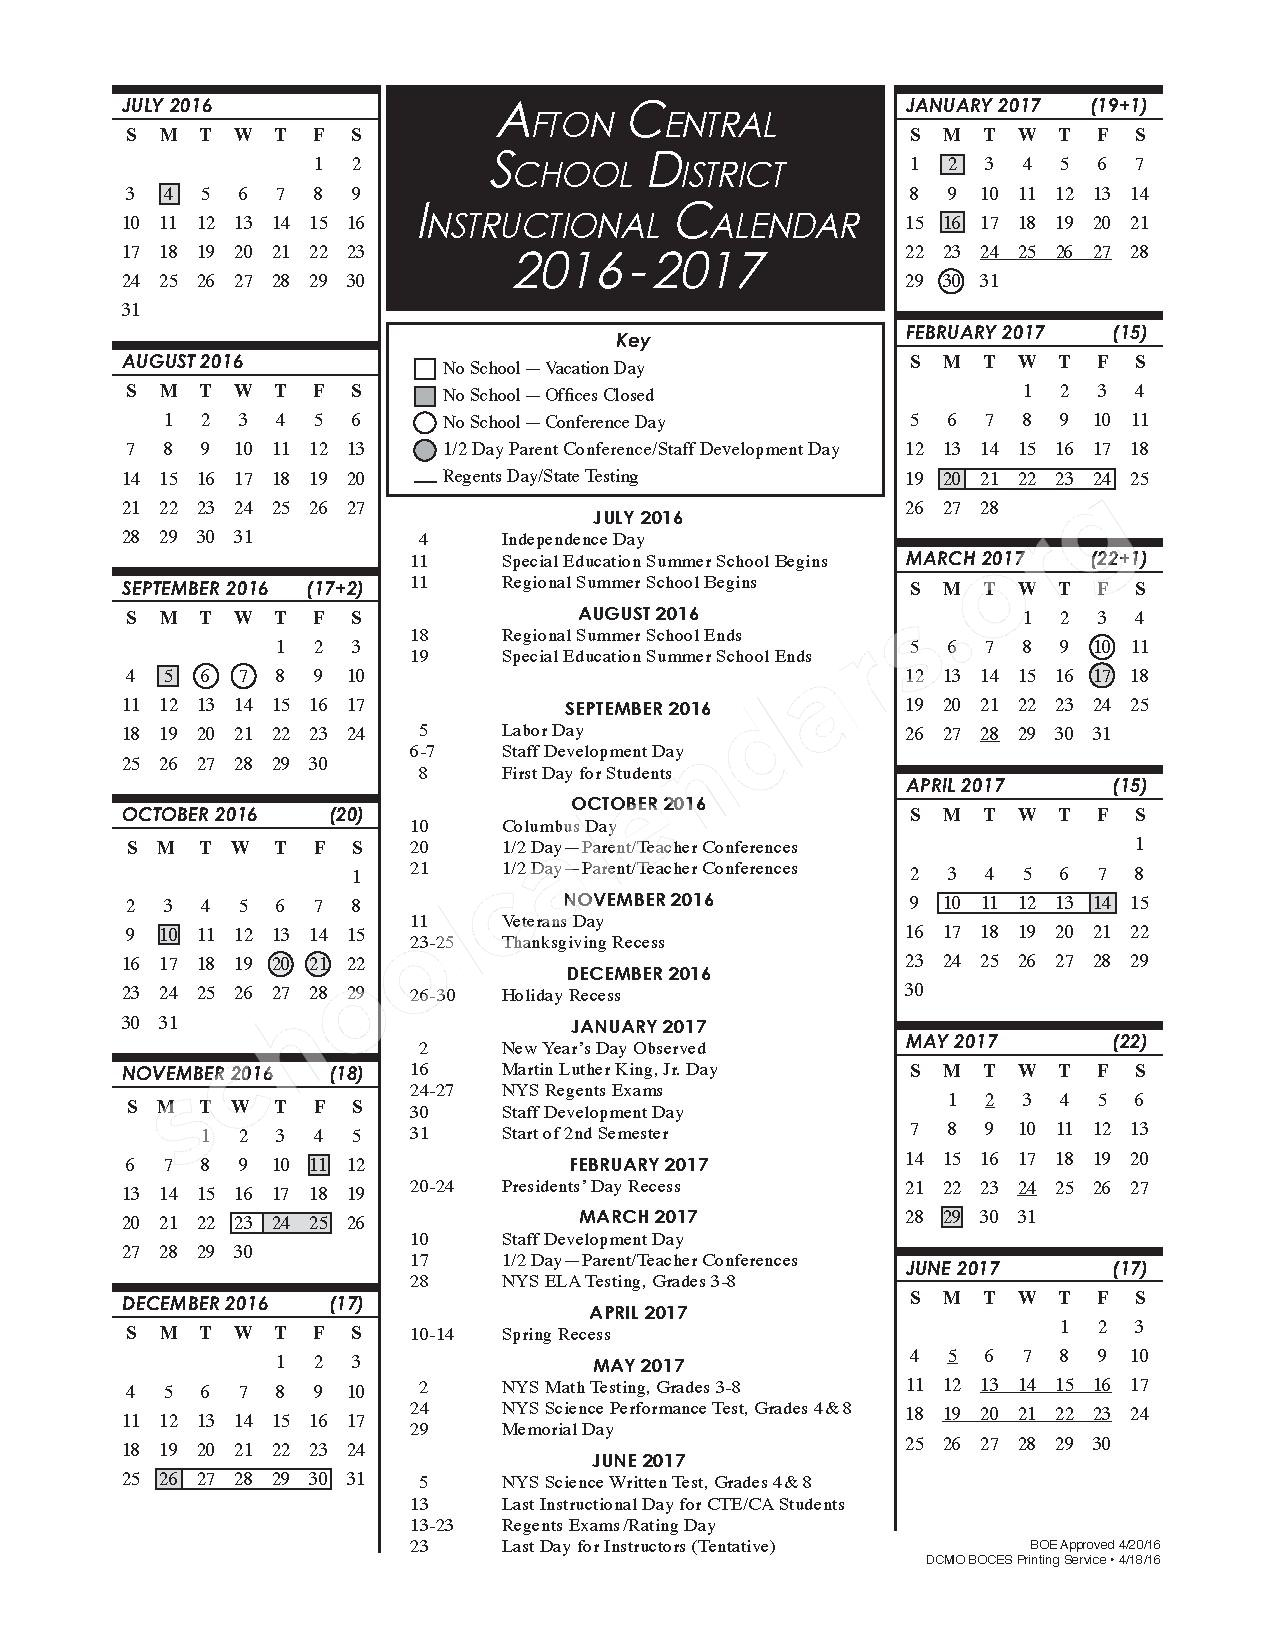 2016 - 2017 Instructional Calendar – Afton Central School District – page 1